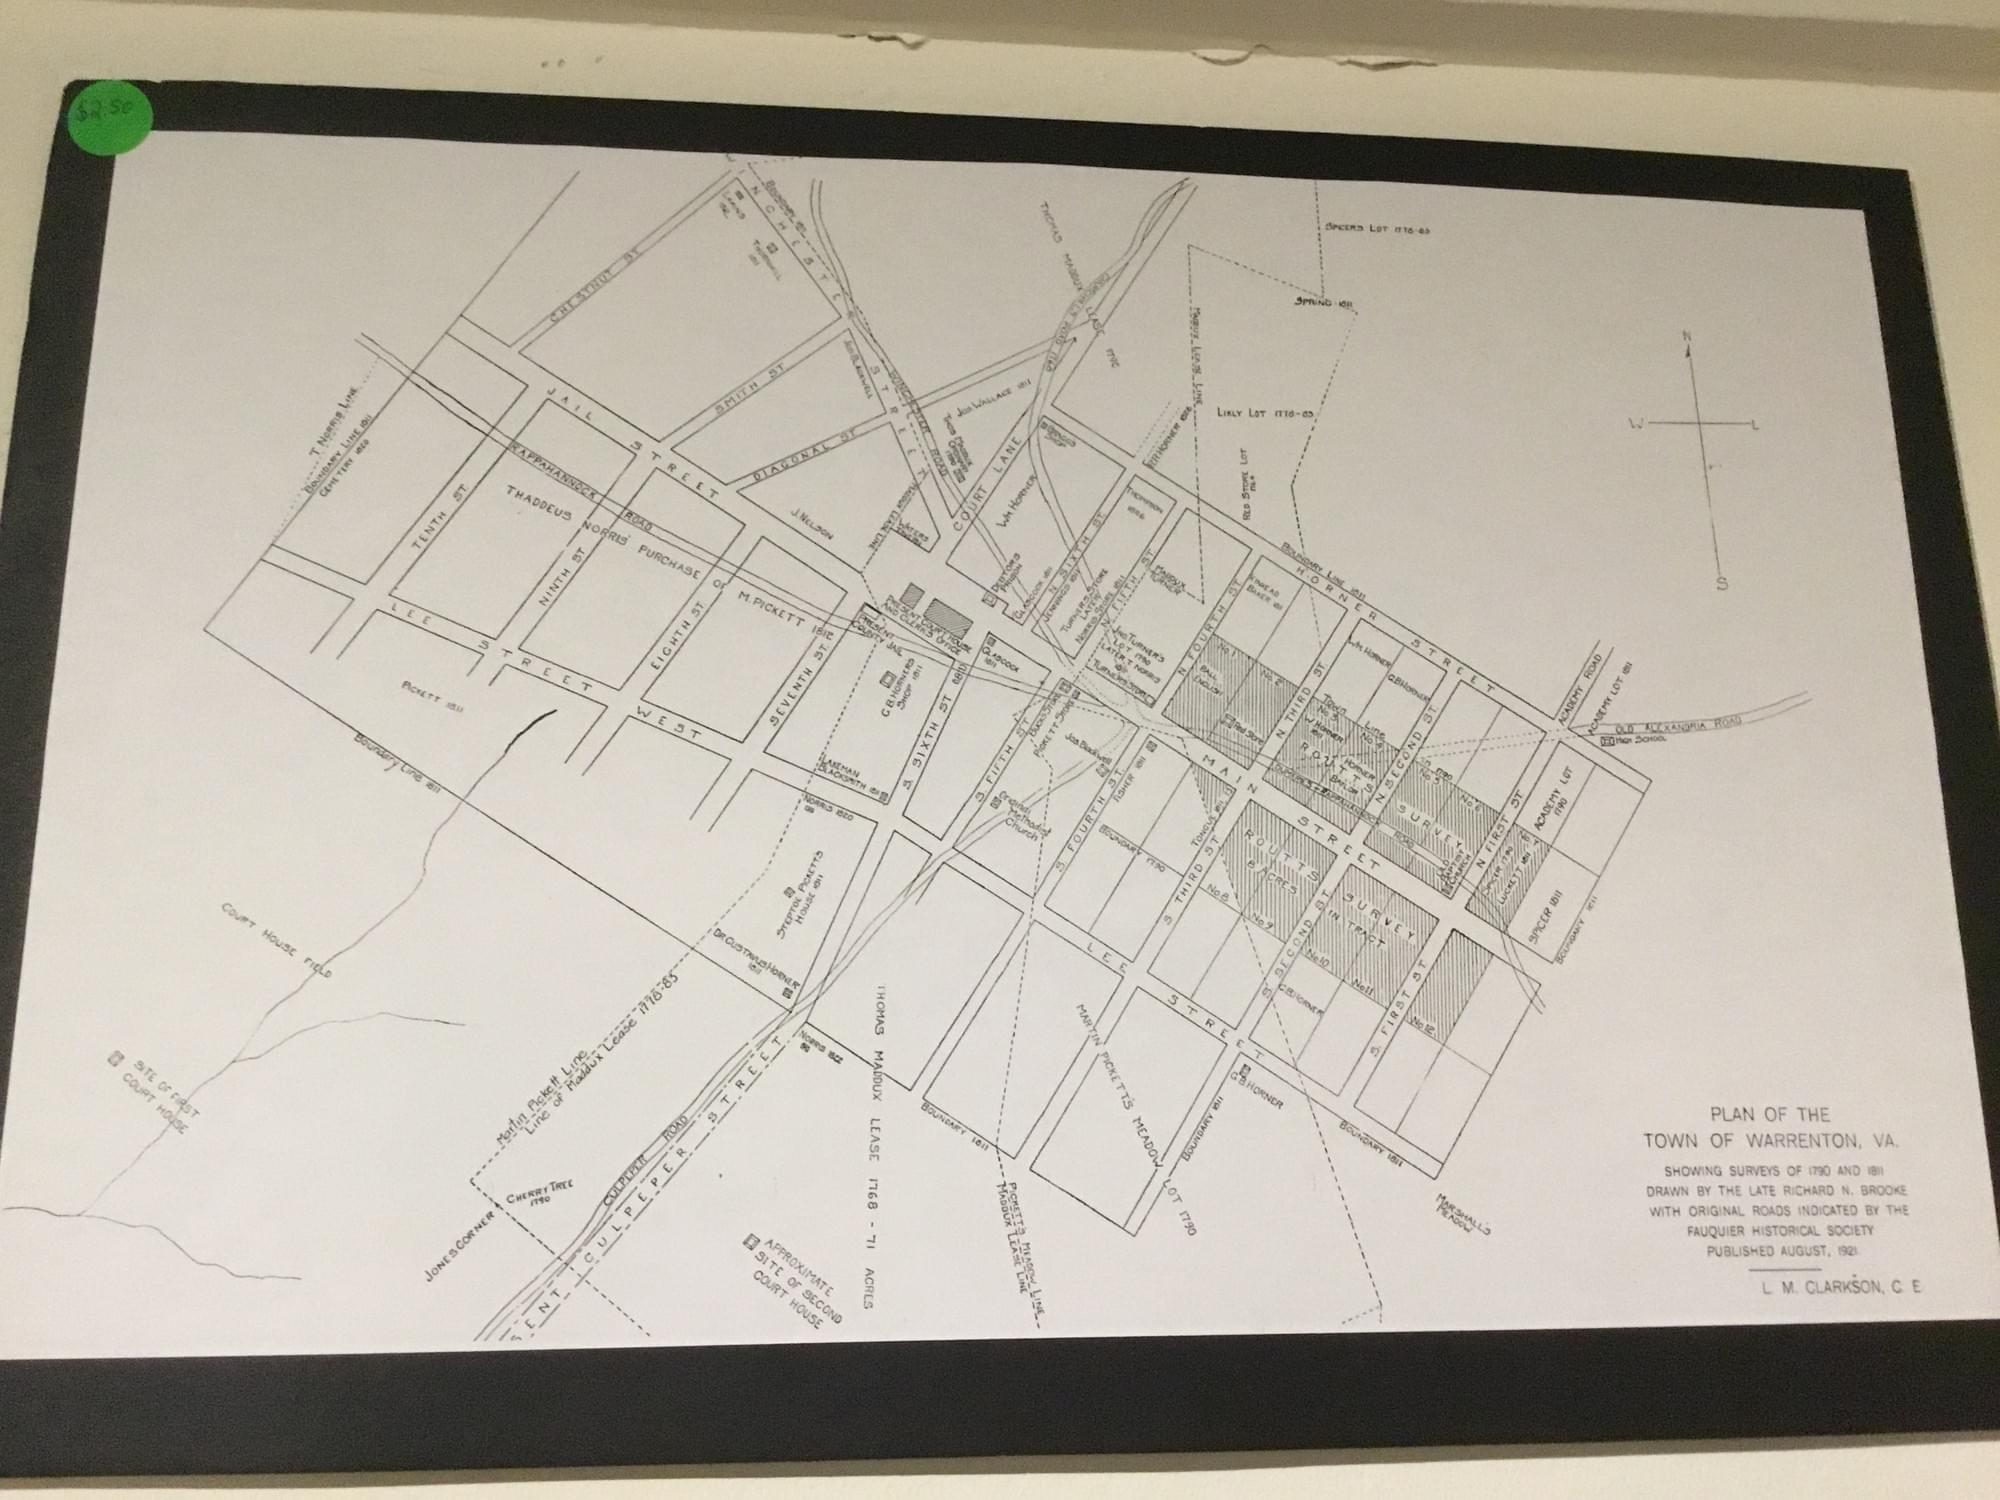 Map of Surveys of 1790 and 1811 of the Town of Warrenton